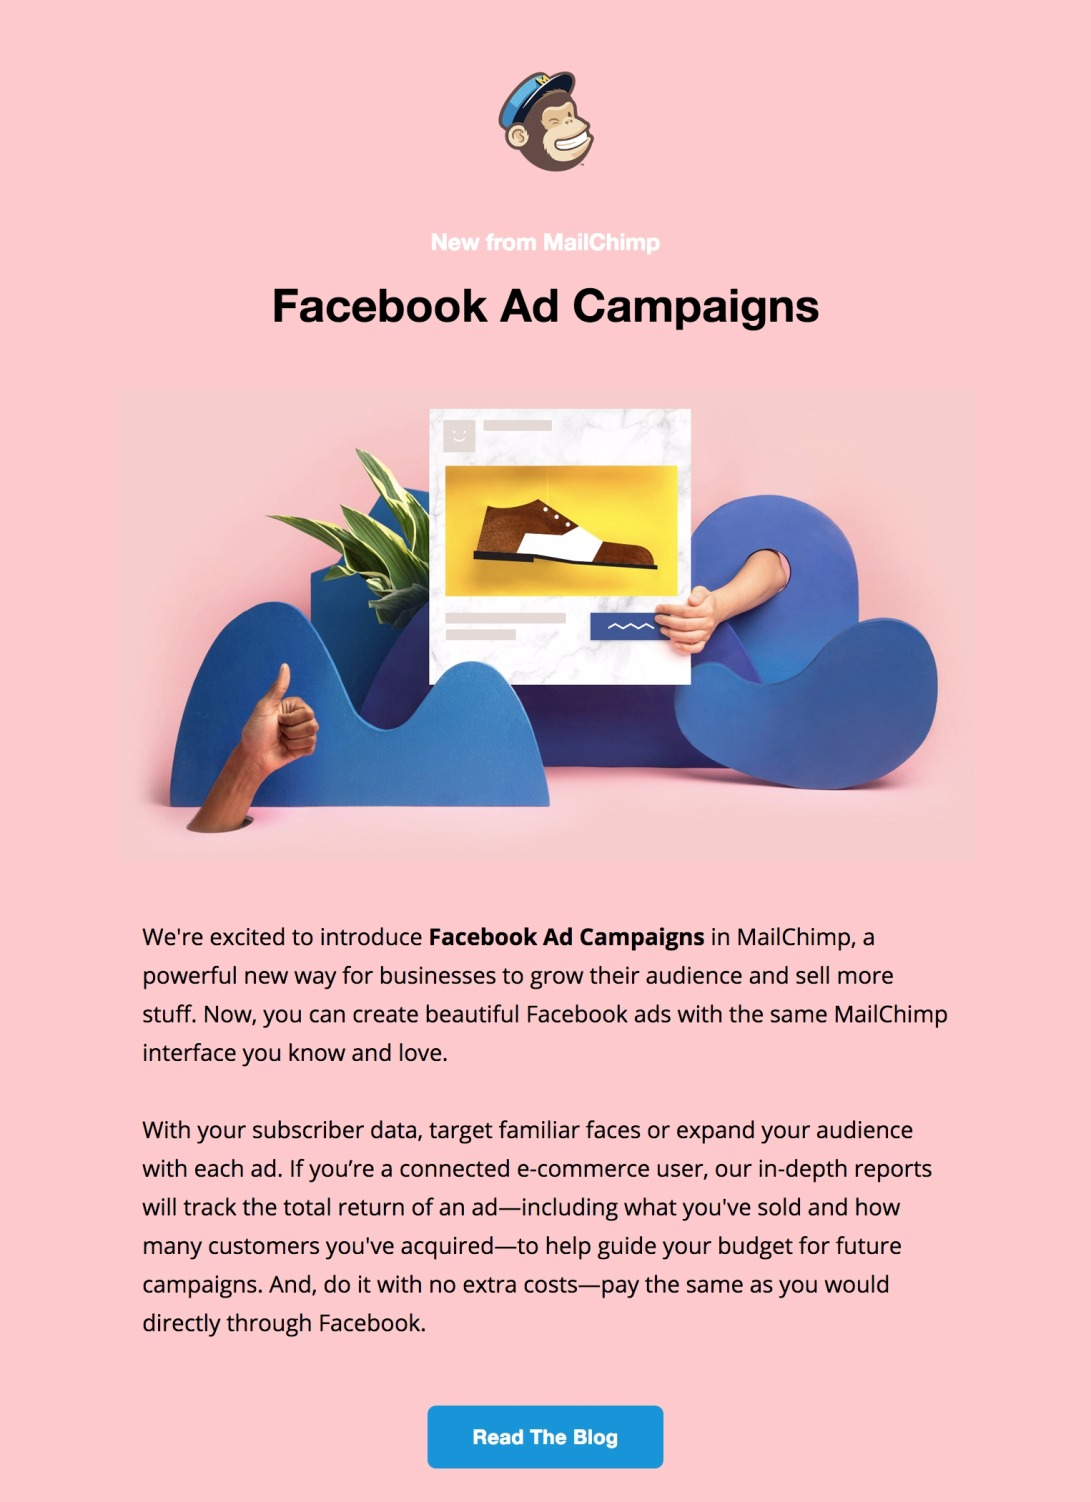 😻 Facebook Ad Campaigns in MailChimp are Here